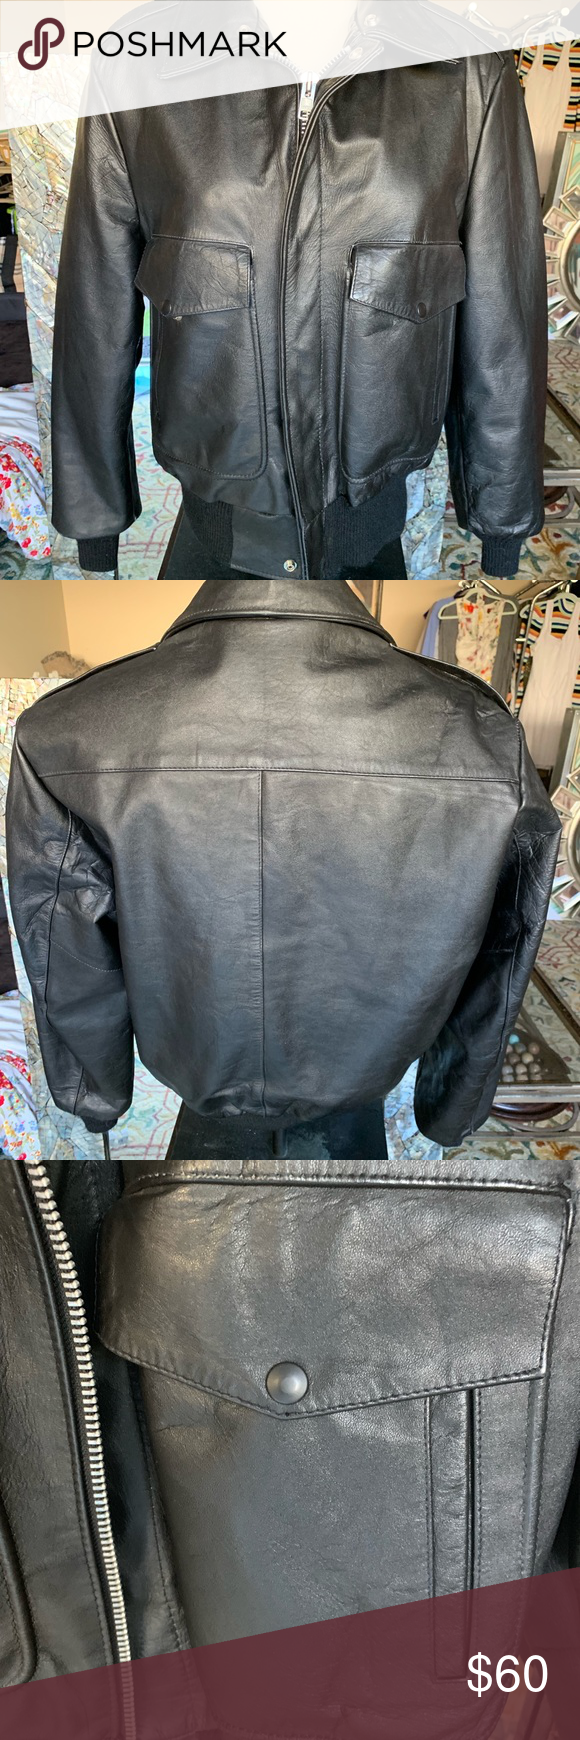 Oak Ton Bomber Jacket Heavy Duty Leather Jacket Quilted Lining Excellent Shape Does Not Have The Fur On Collar Oakton Leather Jacket Jackets Bomber Jacket [ 1740 x 580 Pixel ]